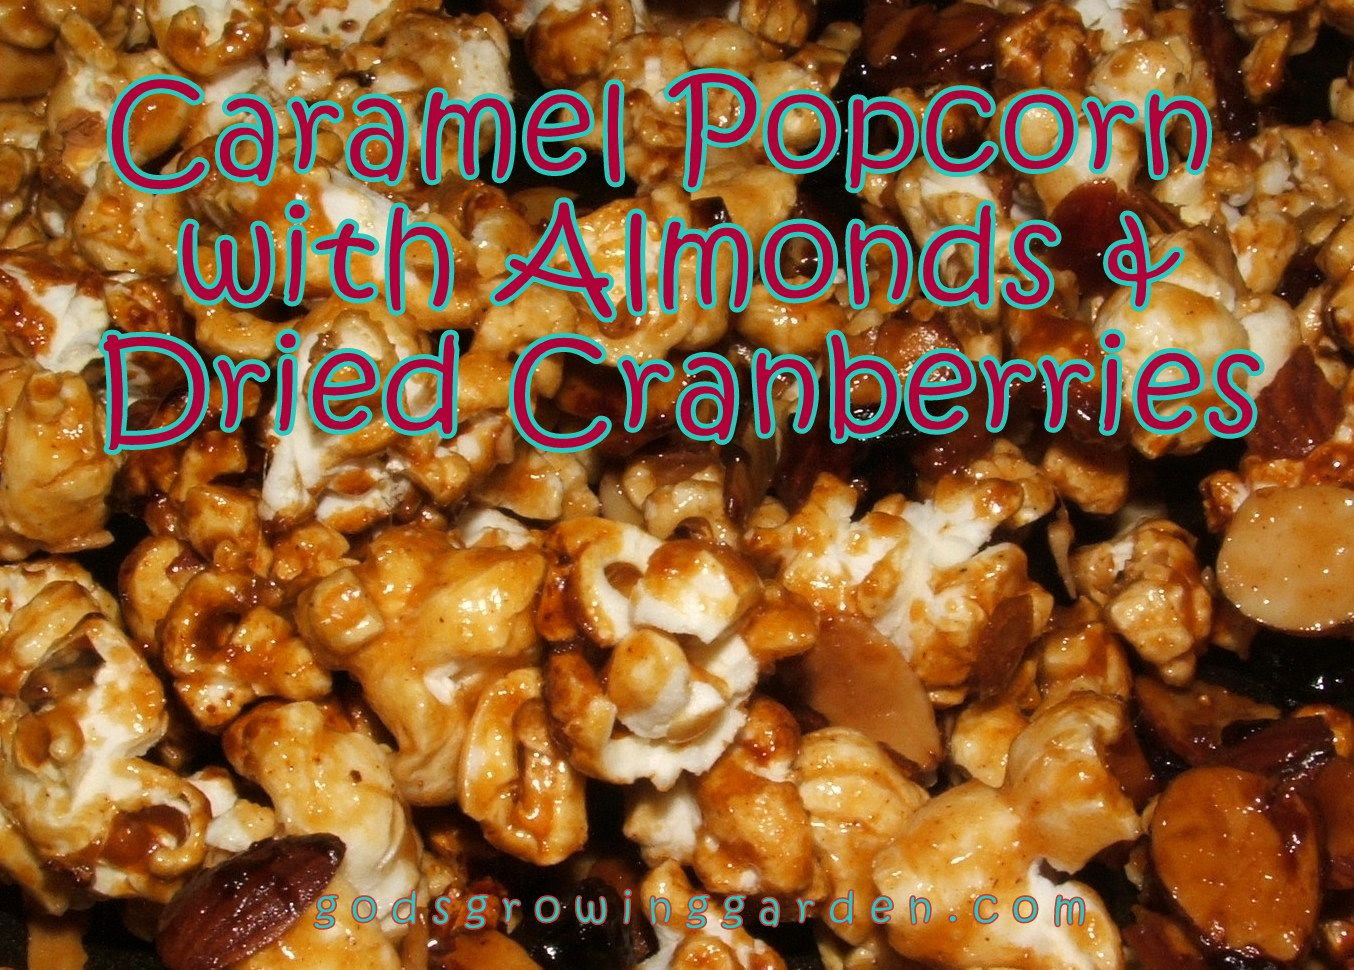 caramel popcorn by Angie Ouellette-Tower for godsgrowinggarden.com photo 009_zps93cc7ac8.jpg